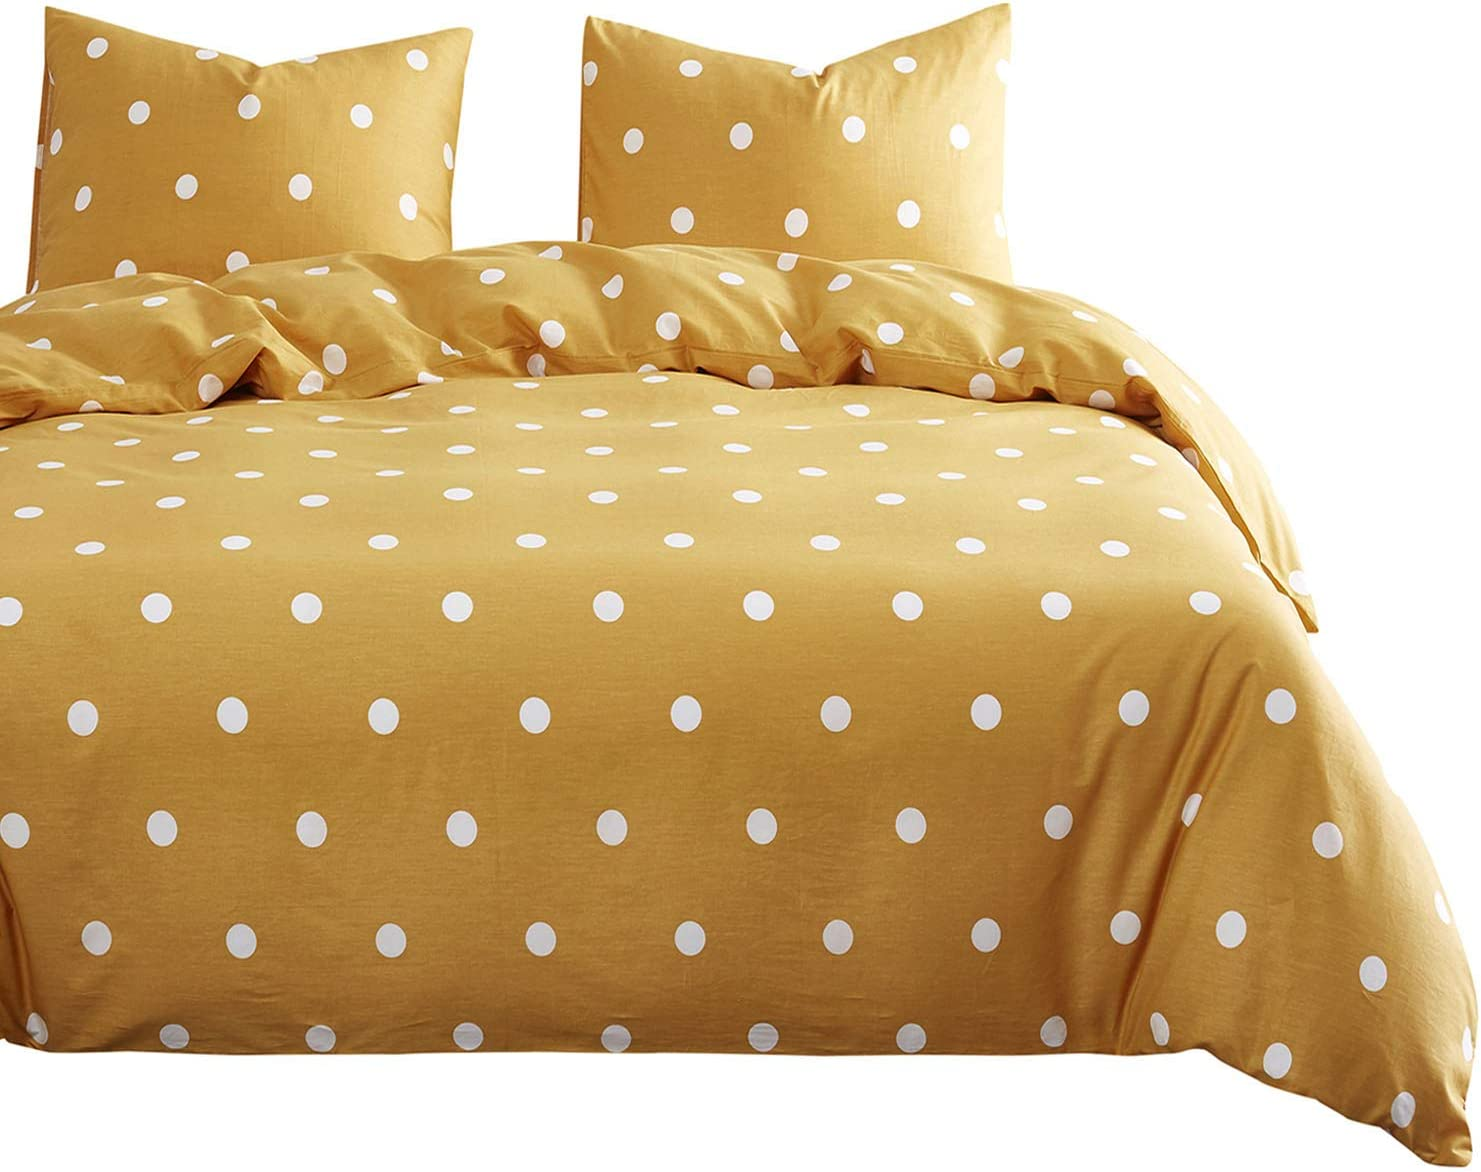 Wake In Cloud - Dotted Yellow Comforter Set, 100% Cotton Fabric with Soft Microfiber Fill Bedding, White Polka Dot Modern Pattern Printed (3pcs, Queen Size)